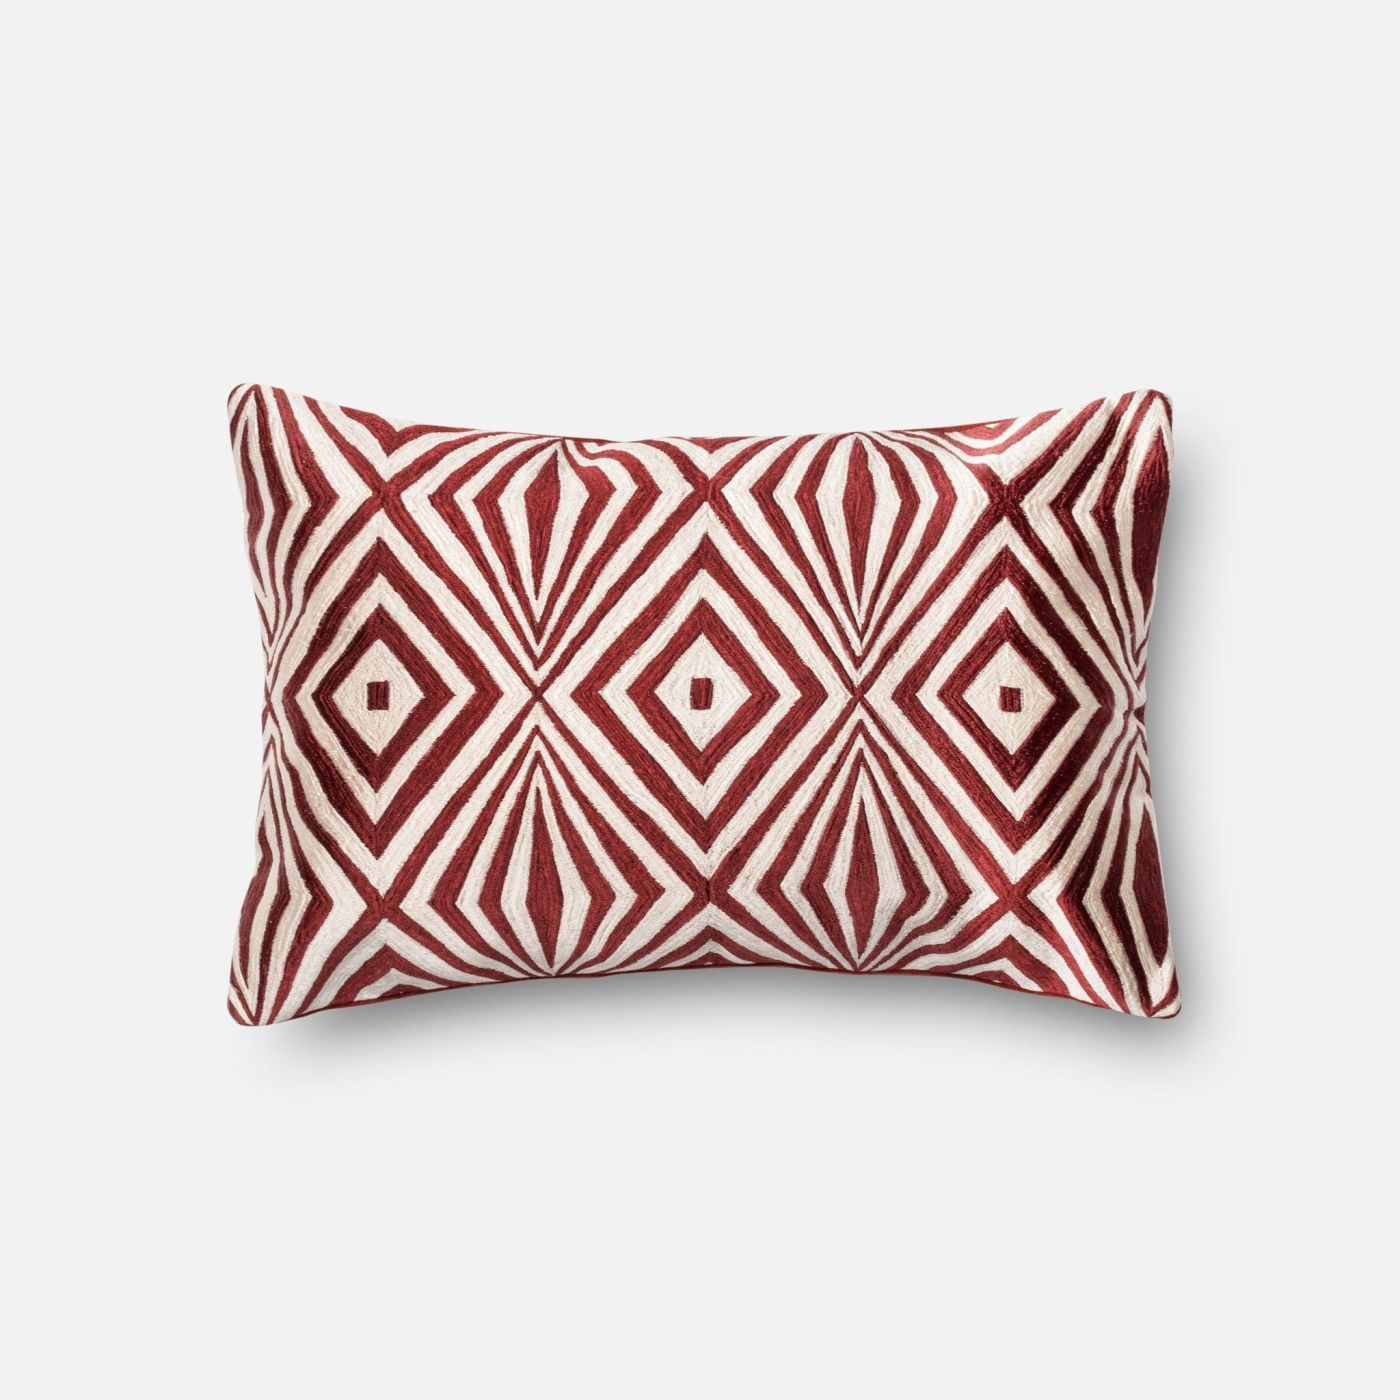 Loloi Rugs Loloi Red / Ivory Decorative Throw Pillow (P0011) DSETP0011REIVPIL5. Only $89.00 at ...